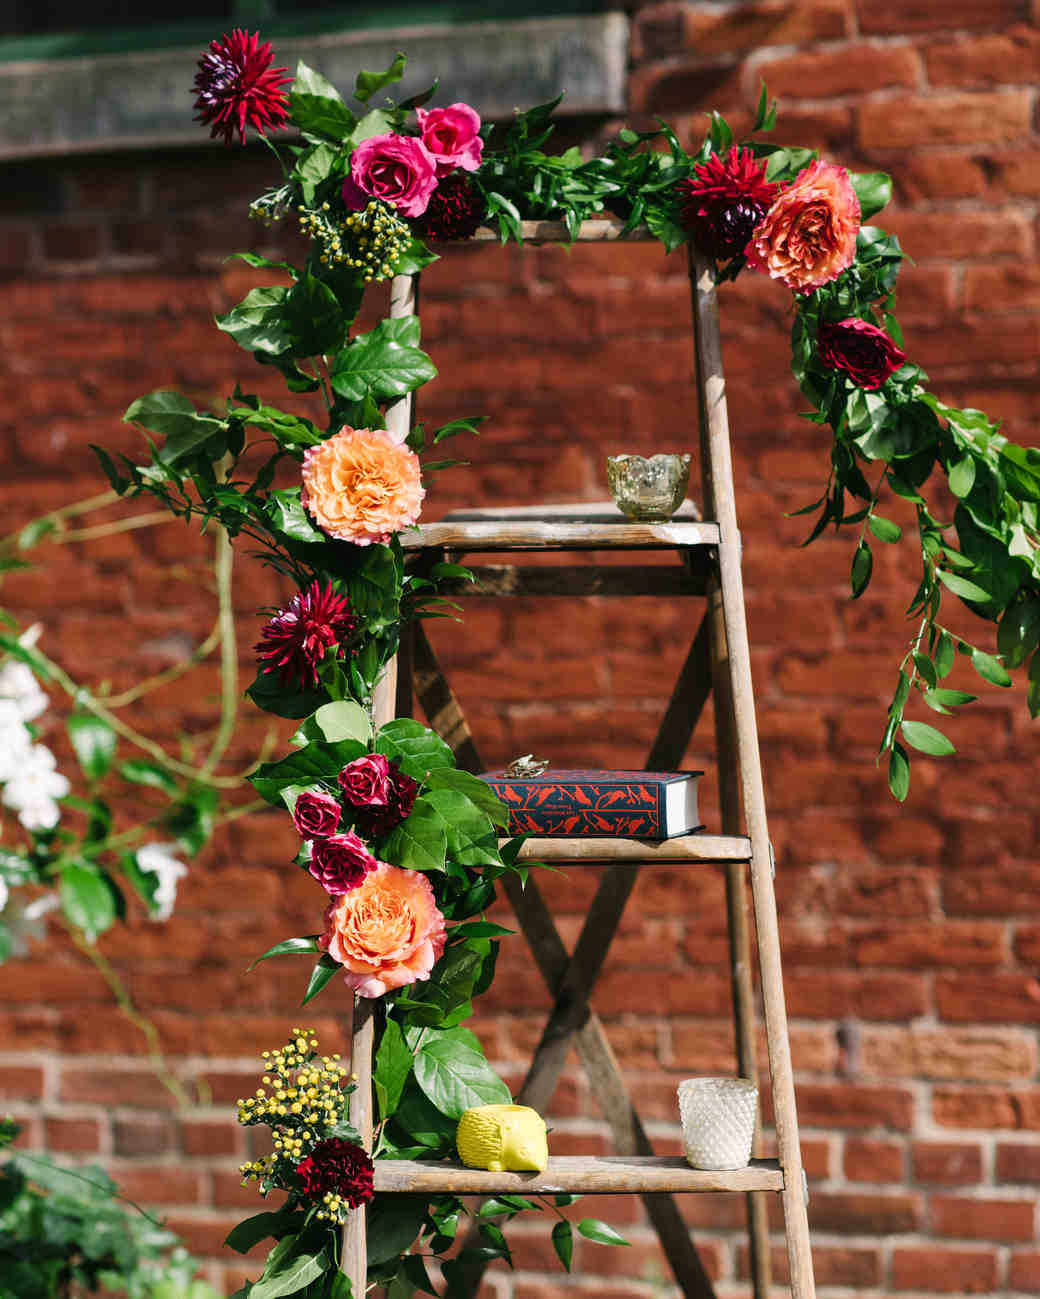 steph tim wedding ceremony ladder brick and flowers backdrop